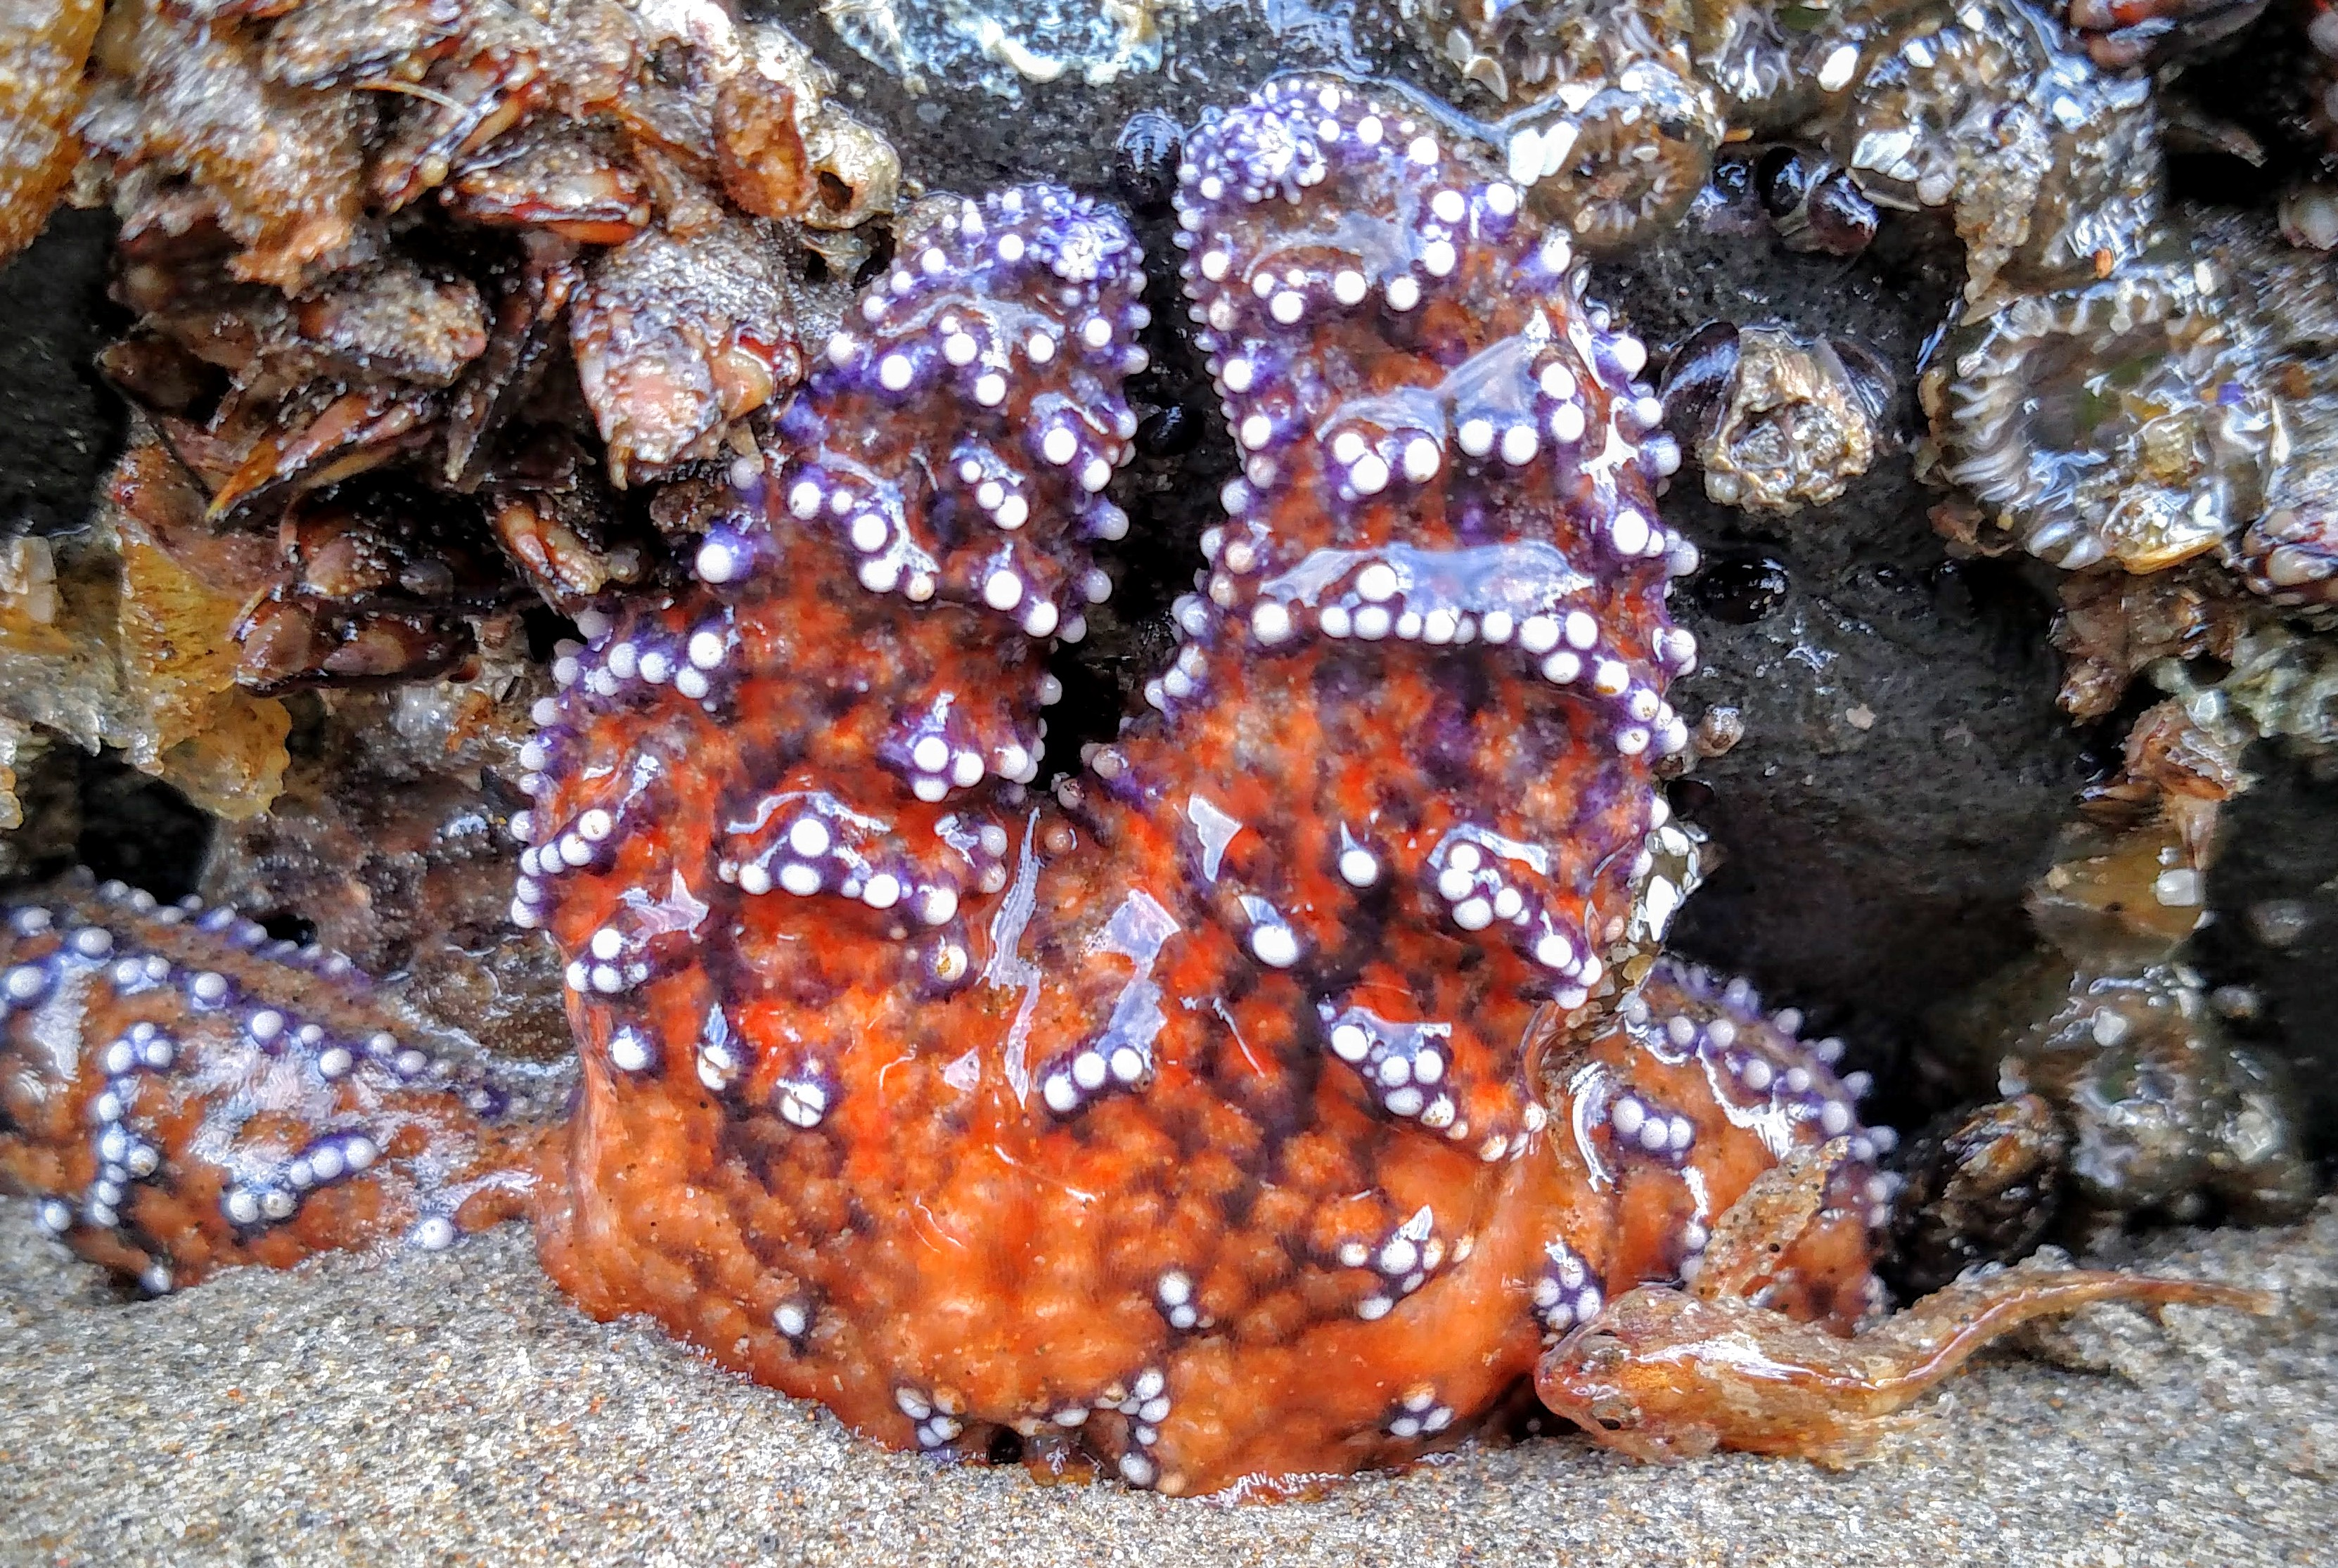 Stranded Starfish and Sculpin